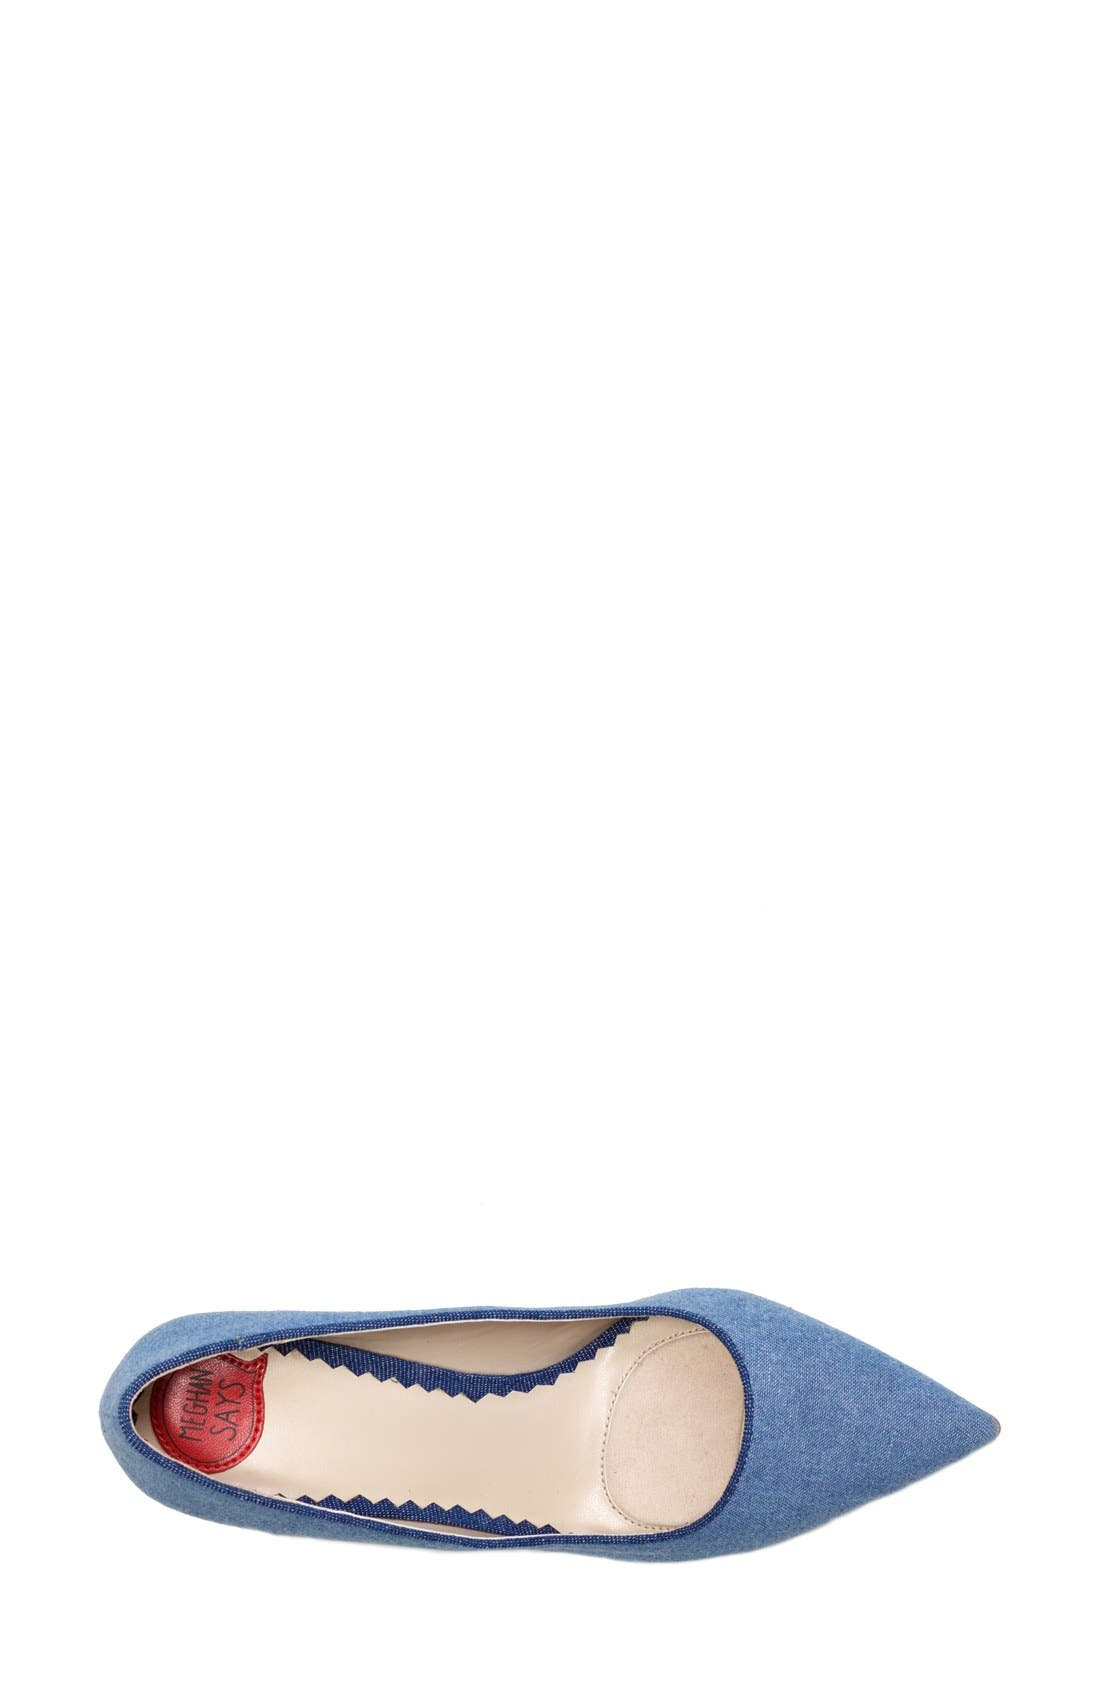 'OMG' Pointy Toe Pump,                             Alternate thumbnail 3, color,                             Light Blue